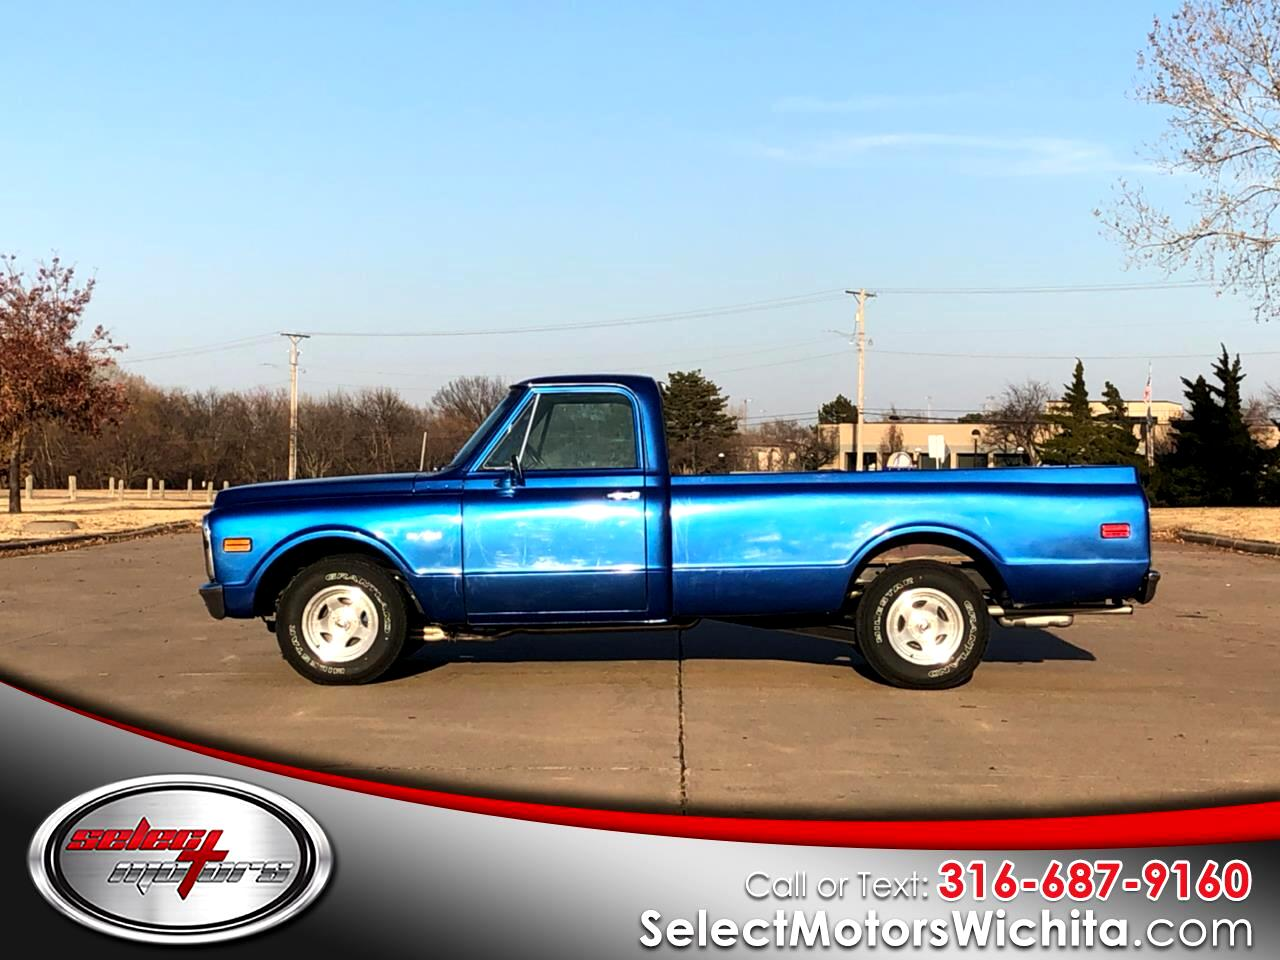 1970 Chevrolet C/K 10 Regular Cab 2WD